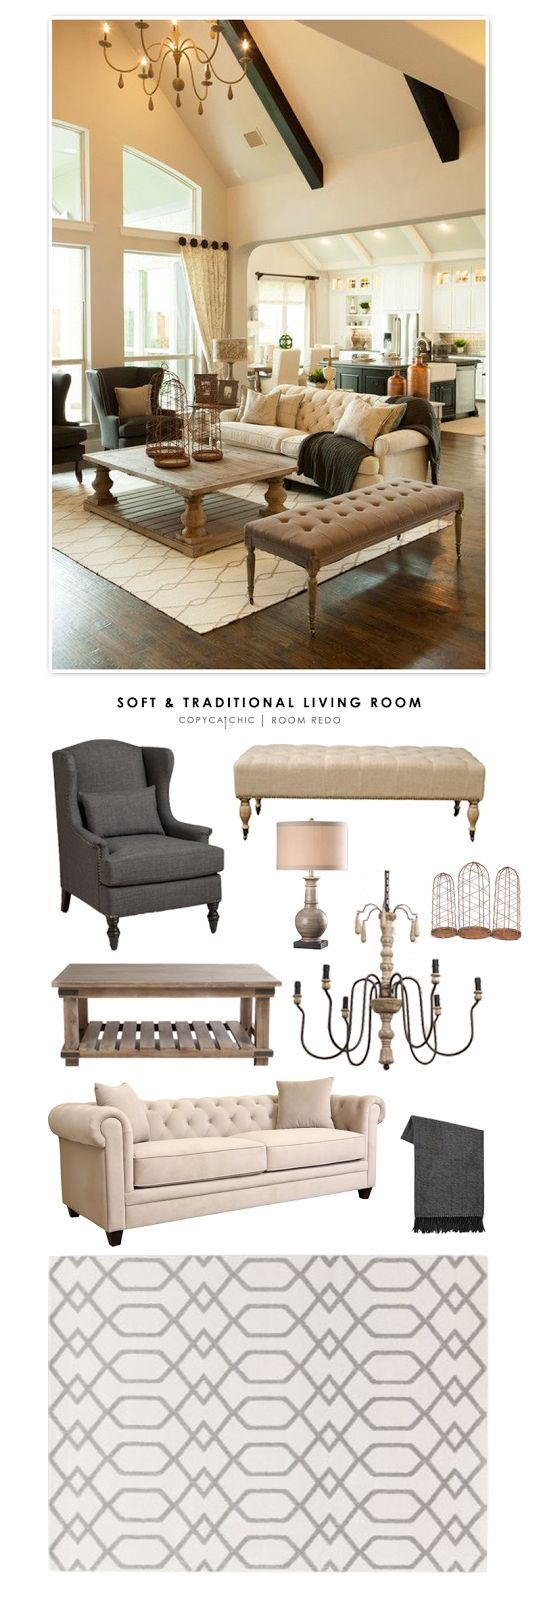 best 25 living room arrangements ideas only on pinterest living copy cat chic room redo